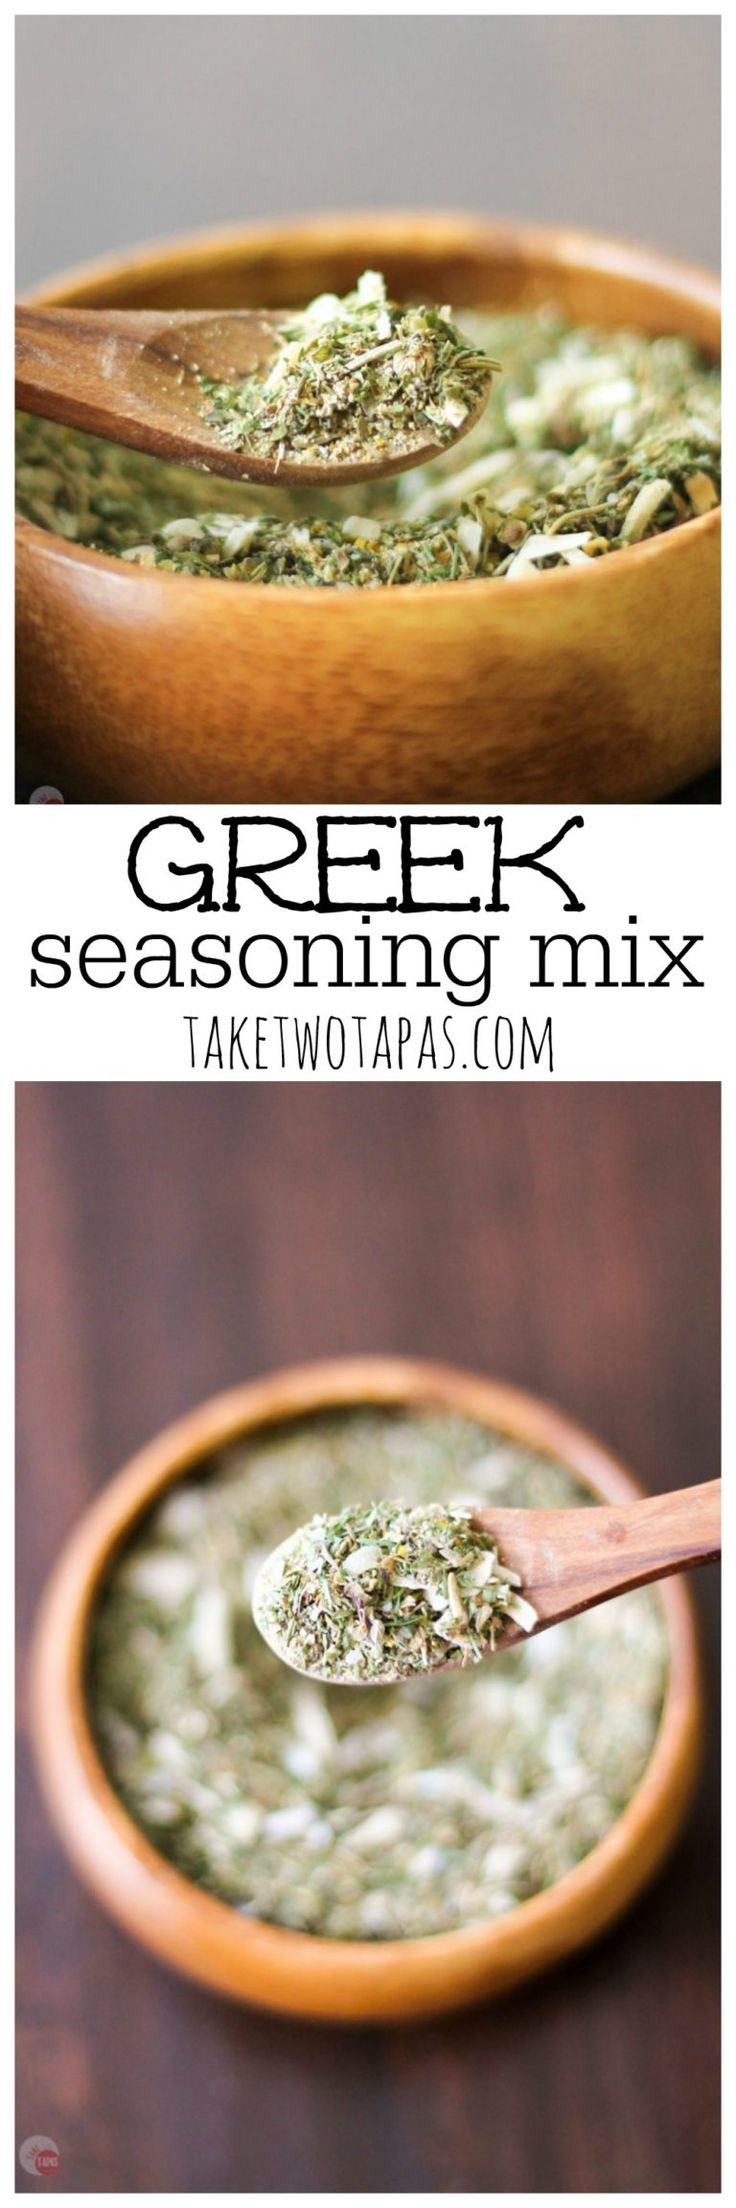 Want a new spice mix to dress up your chicken or steak? Try this Greek Seasoning Mix you can make at home! Greek Seasoning Mix Recipe | Take Two Tapas